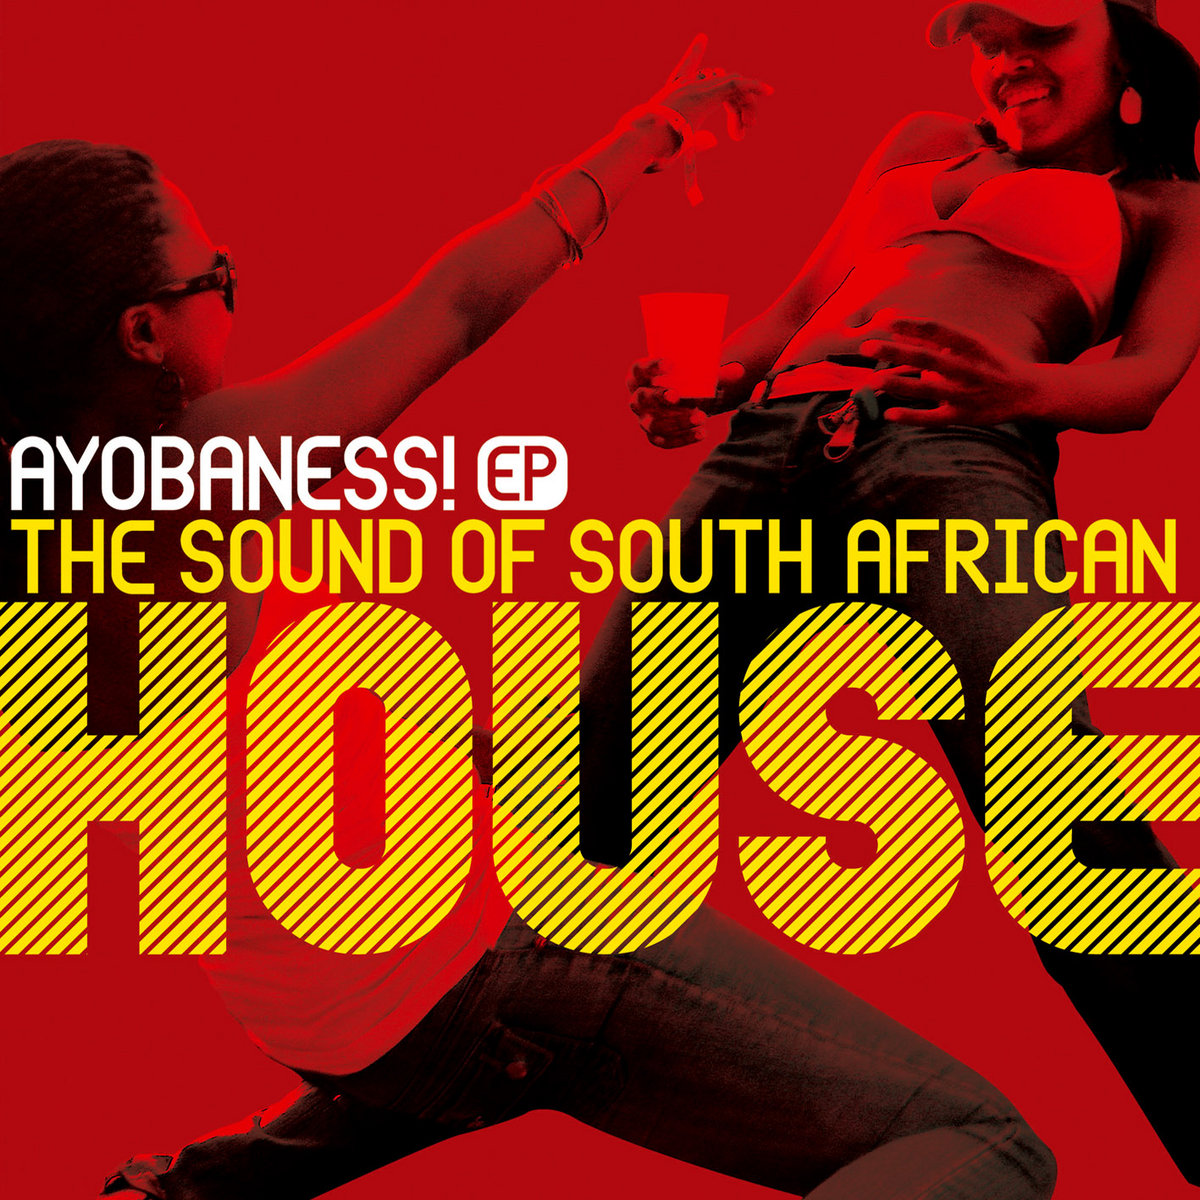 Ayobaness! The Sound of South African House EP   Outhere Records